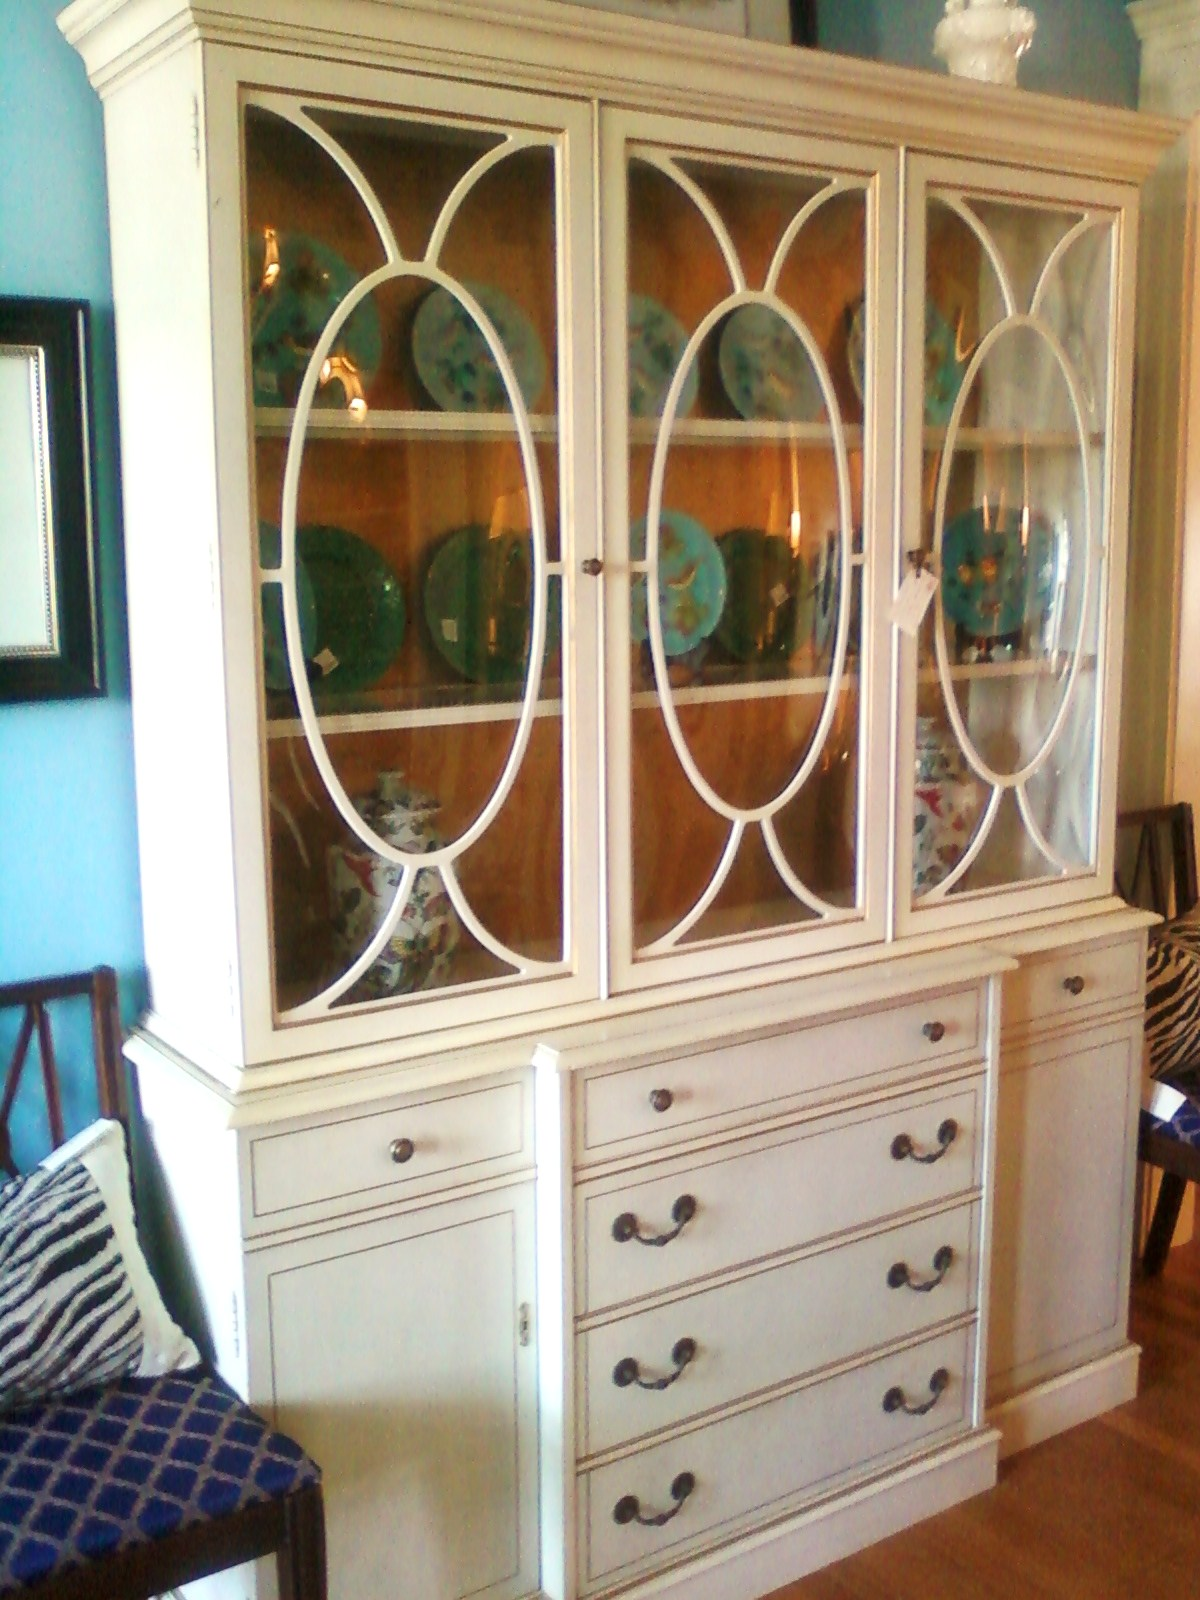 Outstanding Dining Room China Hutch Cabinet 1200 x 1600 · 346 kB · jpeg